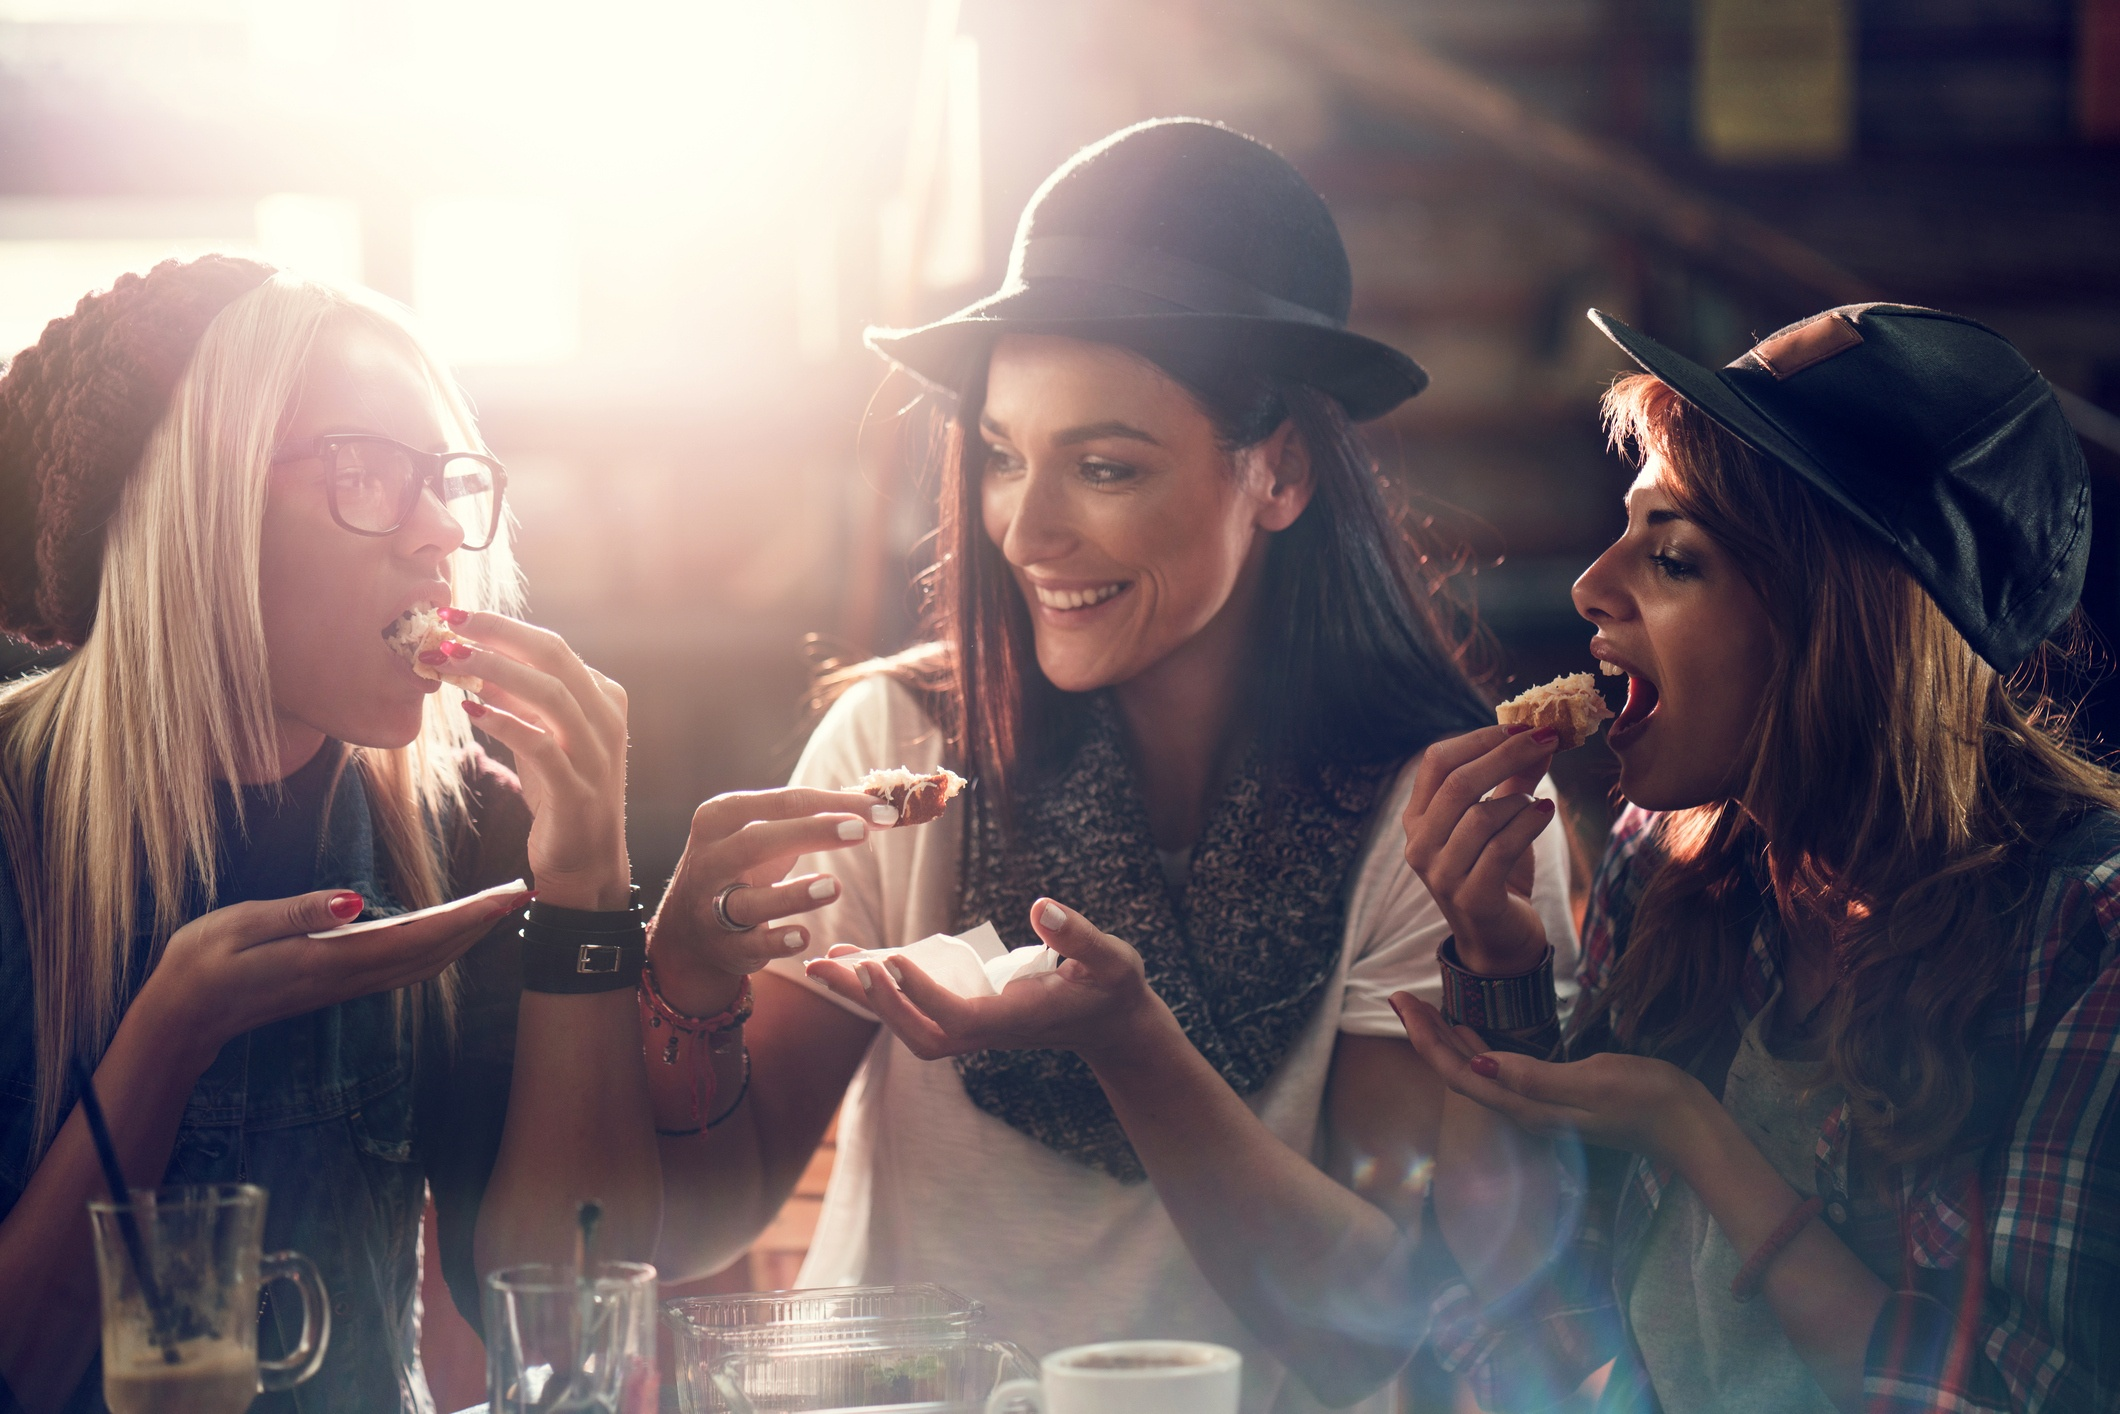 Young-female-friends-having-a-snack-in-a-cafe.-498891264_2123x1416-1